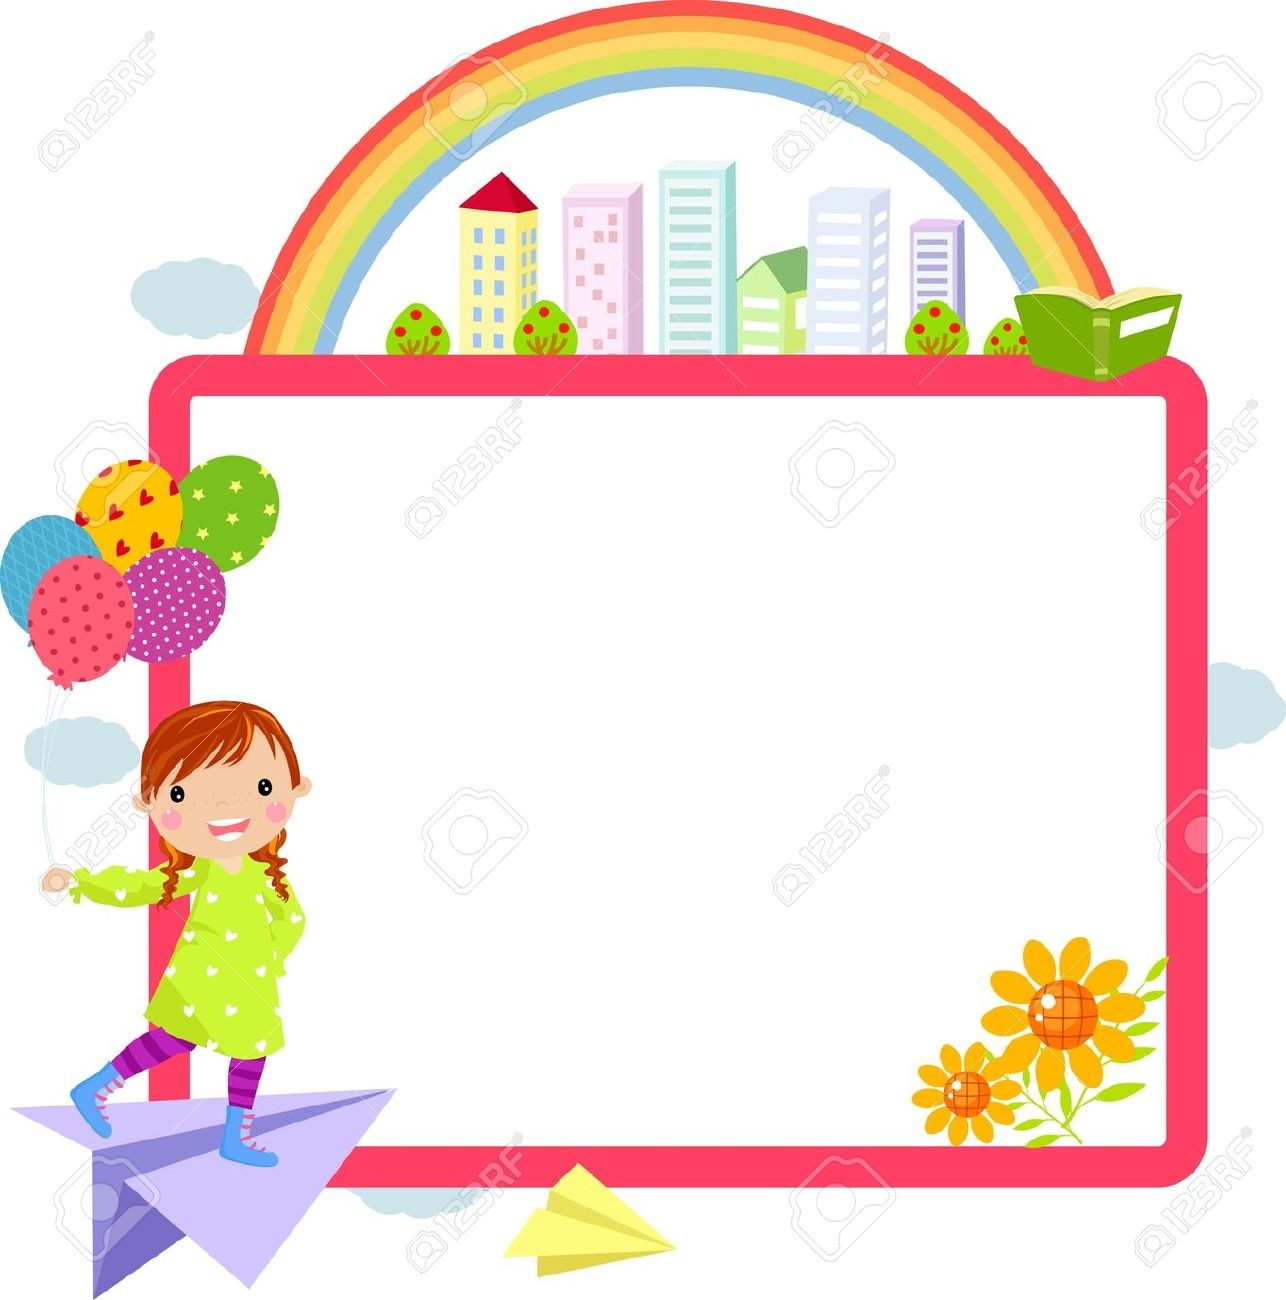 cute school clipart horizontal border #20